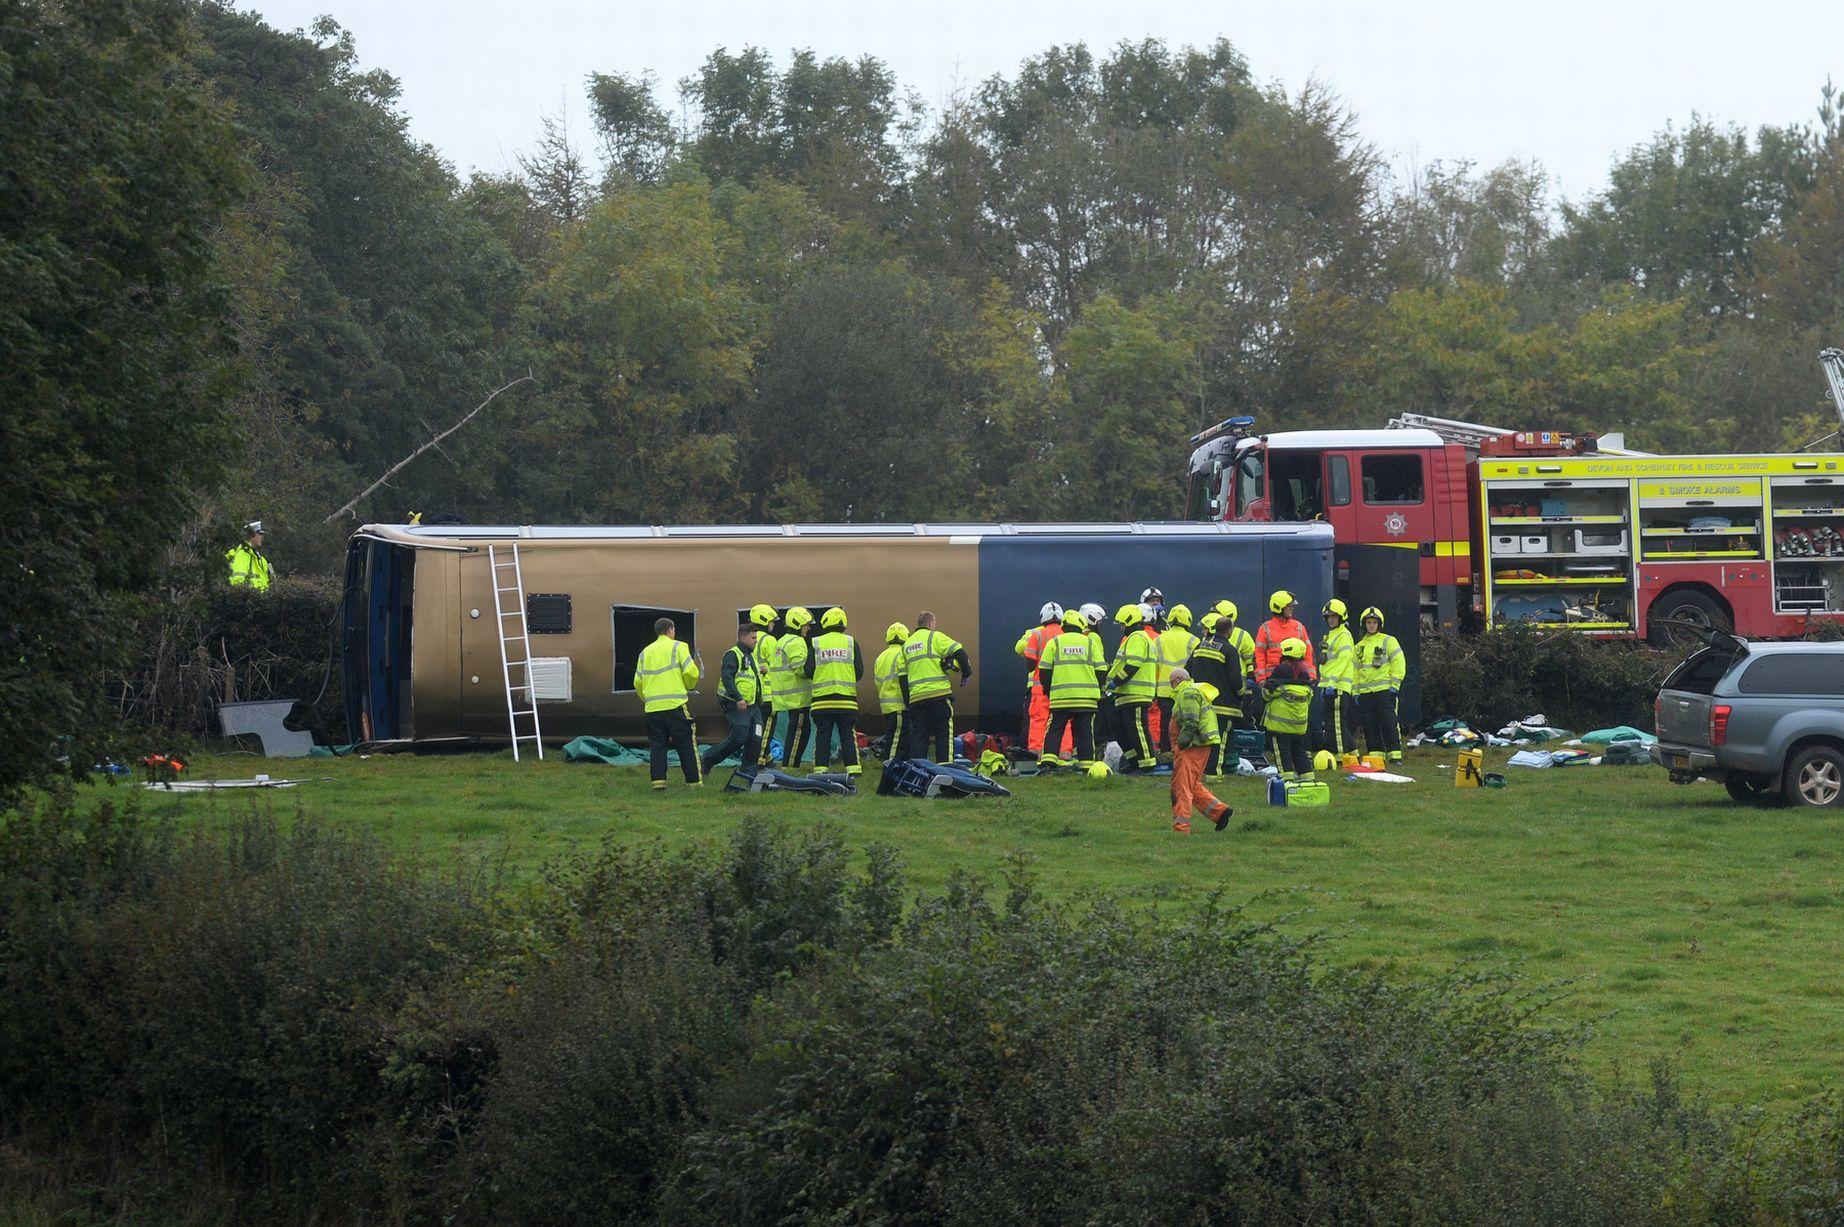 Stage coach double-decker bus comes off the road and lands on its side.